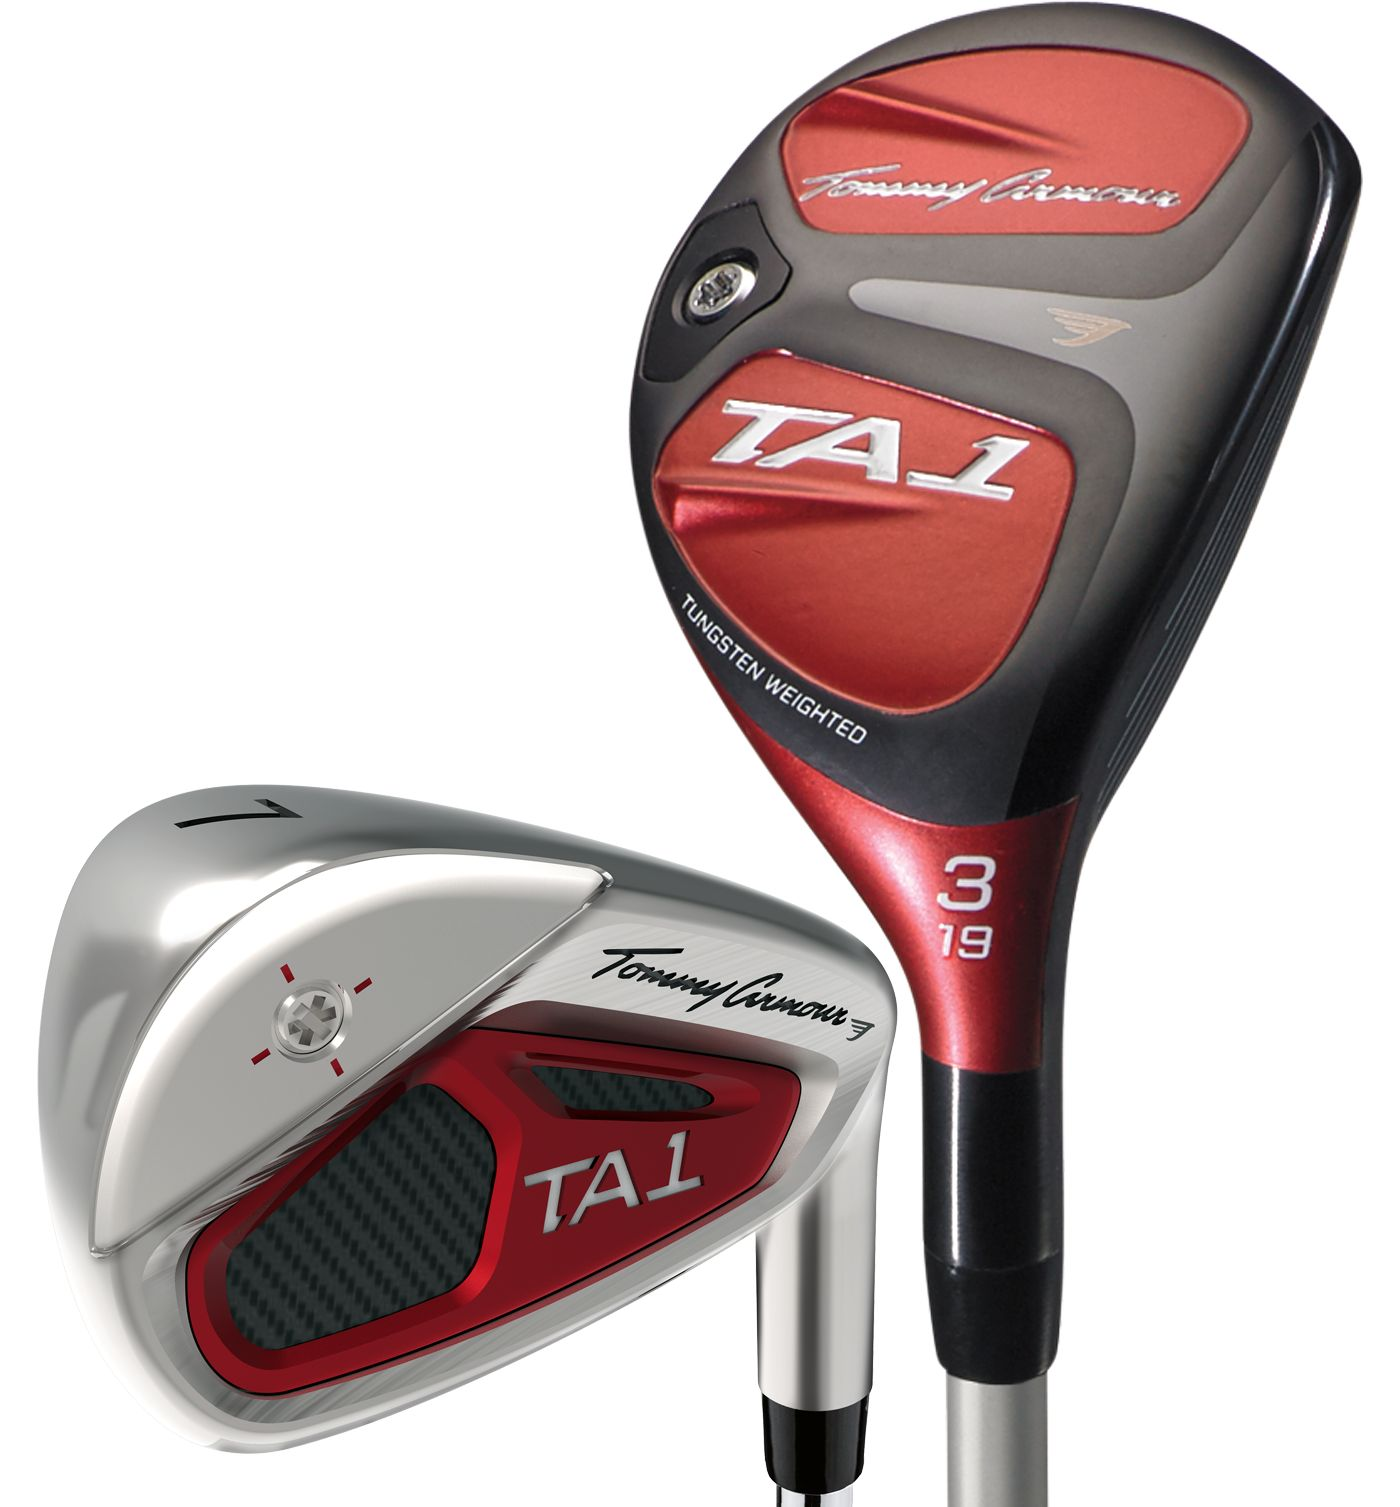 Tommy Armour TA1 Hybrid/Irons – (Graphite)